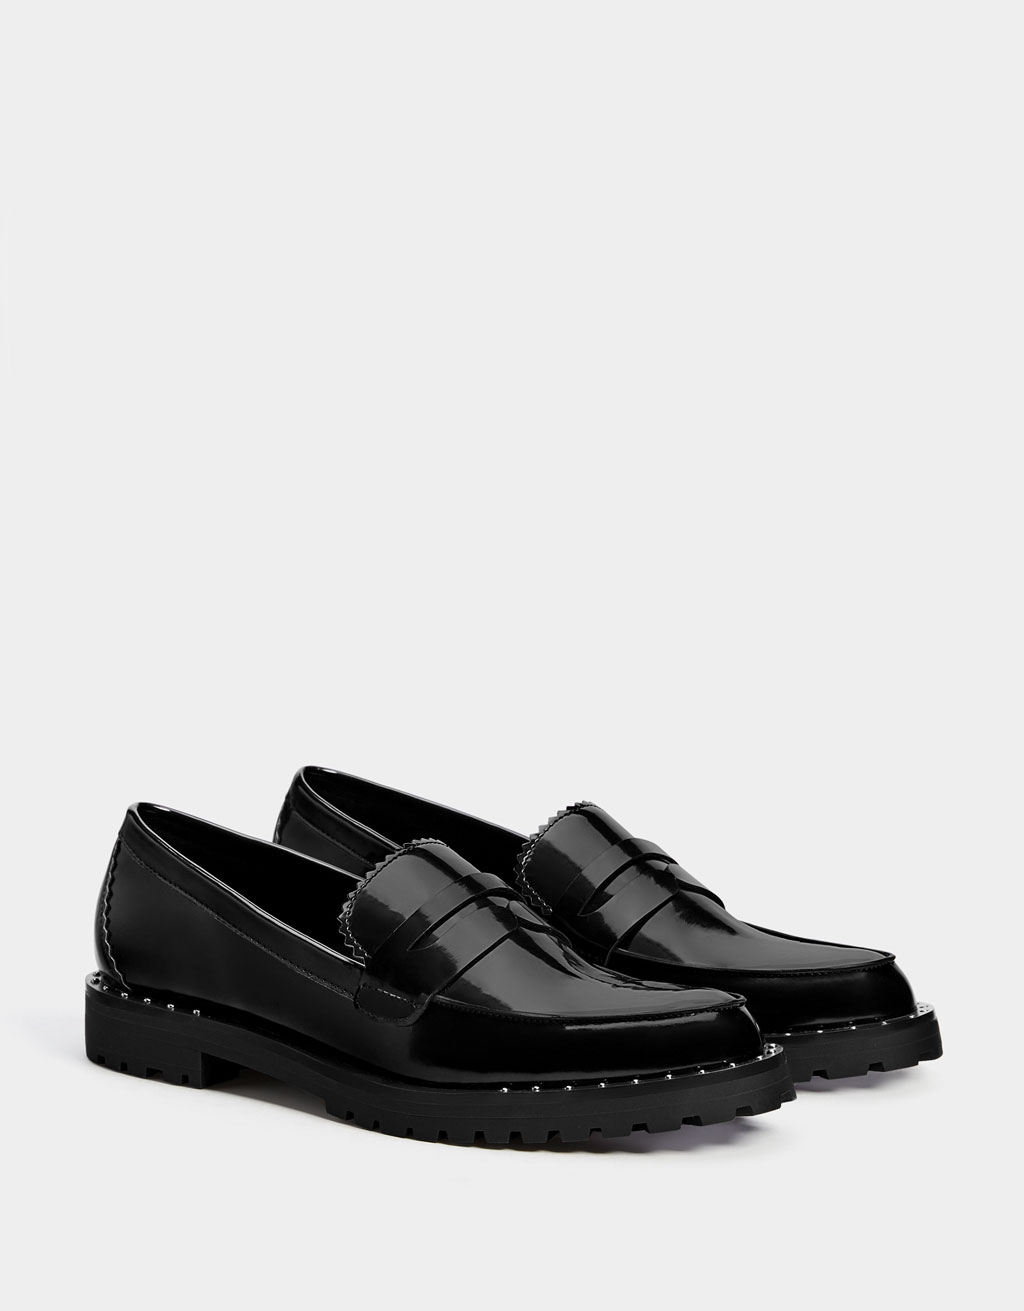 Black faux penny loafers with studs